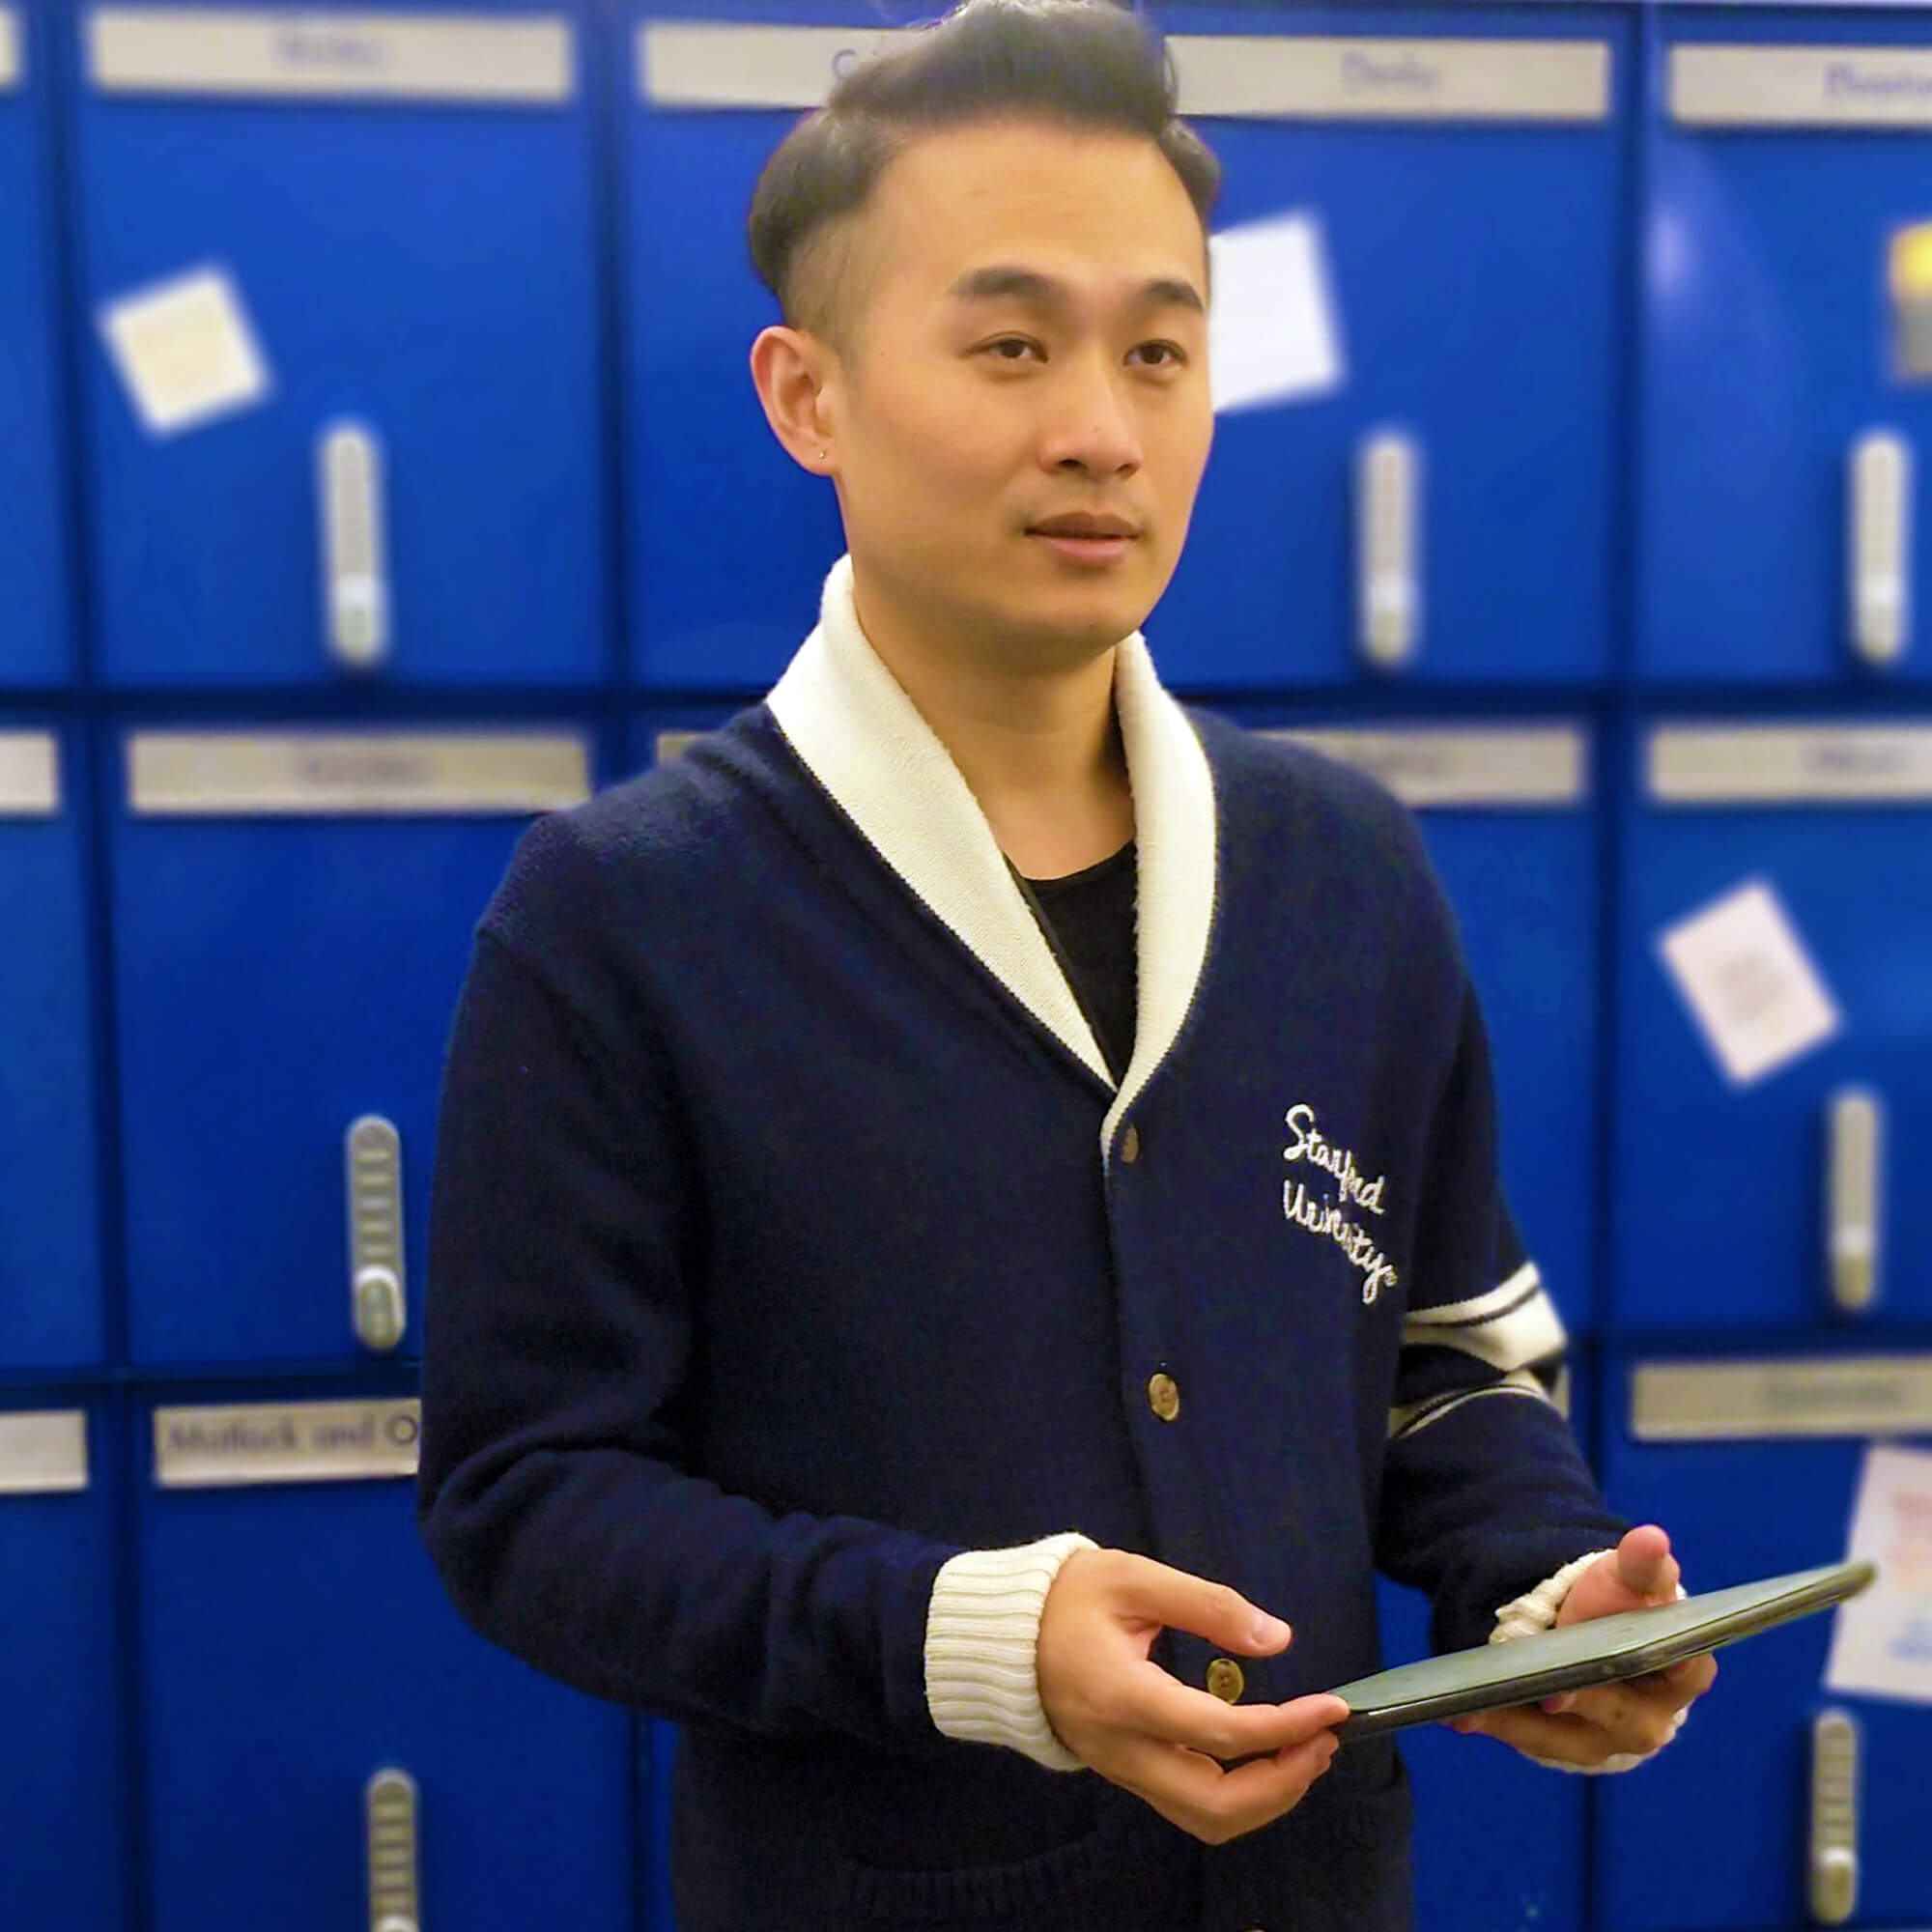 Yutao standing in front of lockers holding a folder